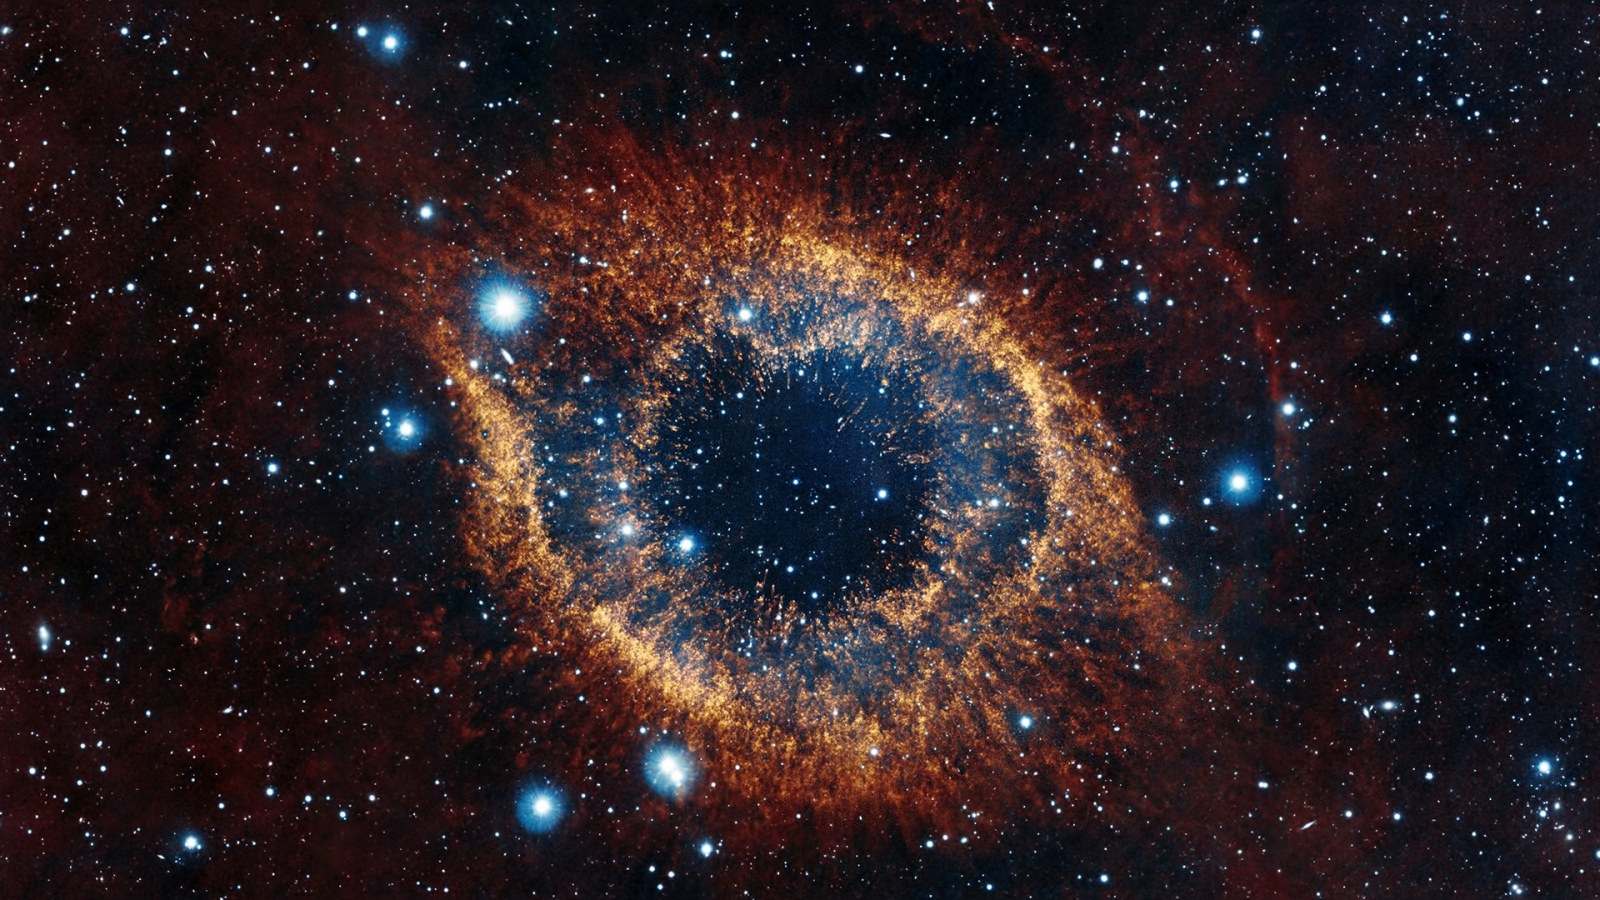 Space images Helix Nebula HD wallpaper and background photos